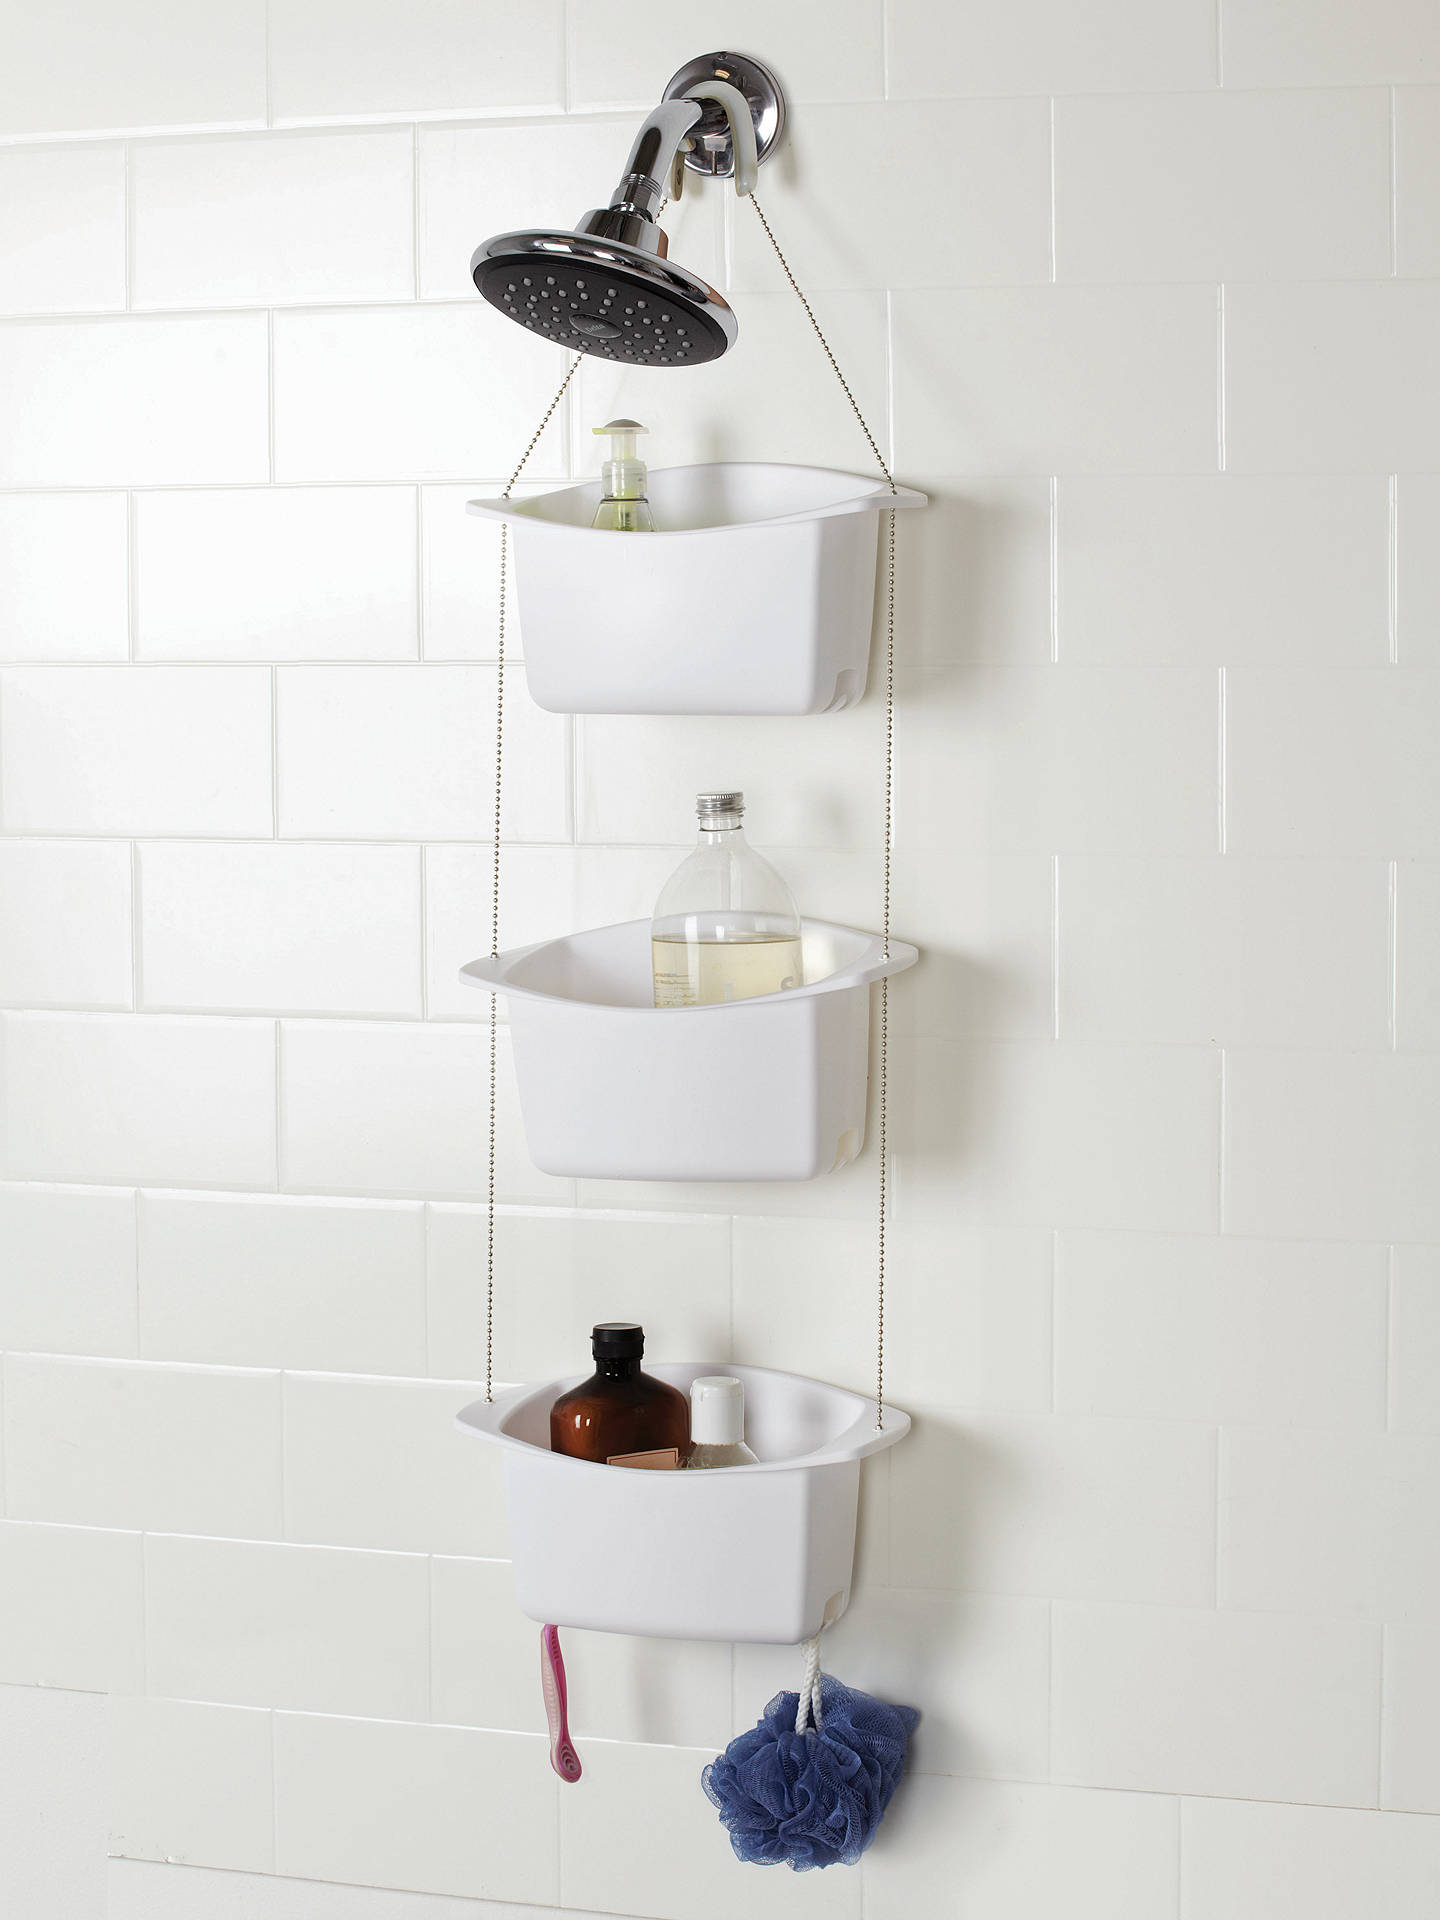 Oasis Bathroom Fittings: Umbra Oasis 3 Tier Shower Caddy Basket At John Lewis